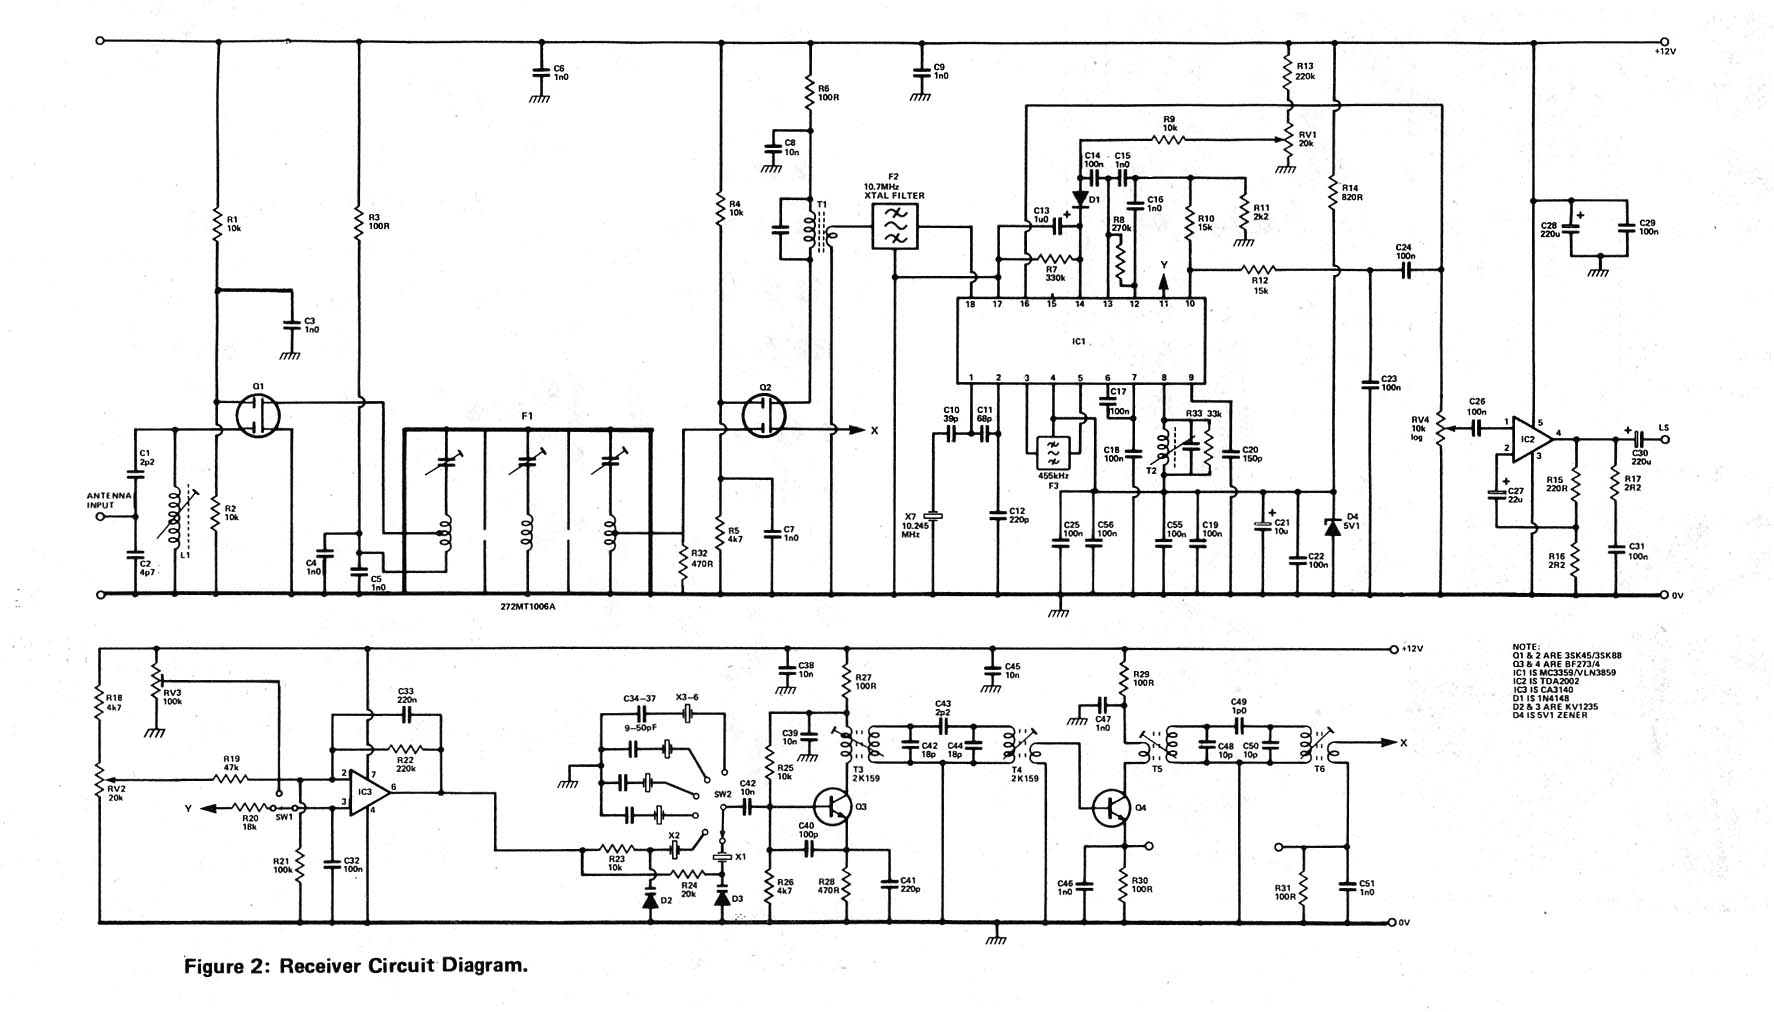 Homebrew 144 Mhz Transceiver Block Diagram Receiver - Wiring Diagram